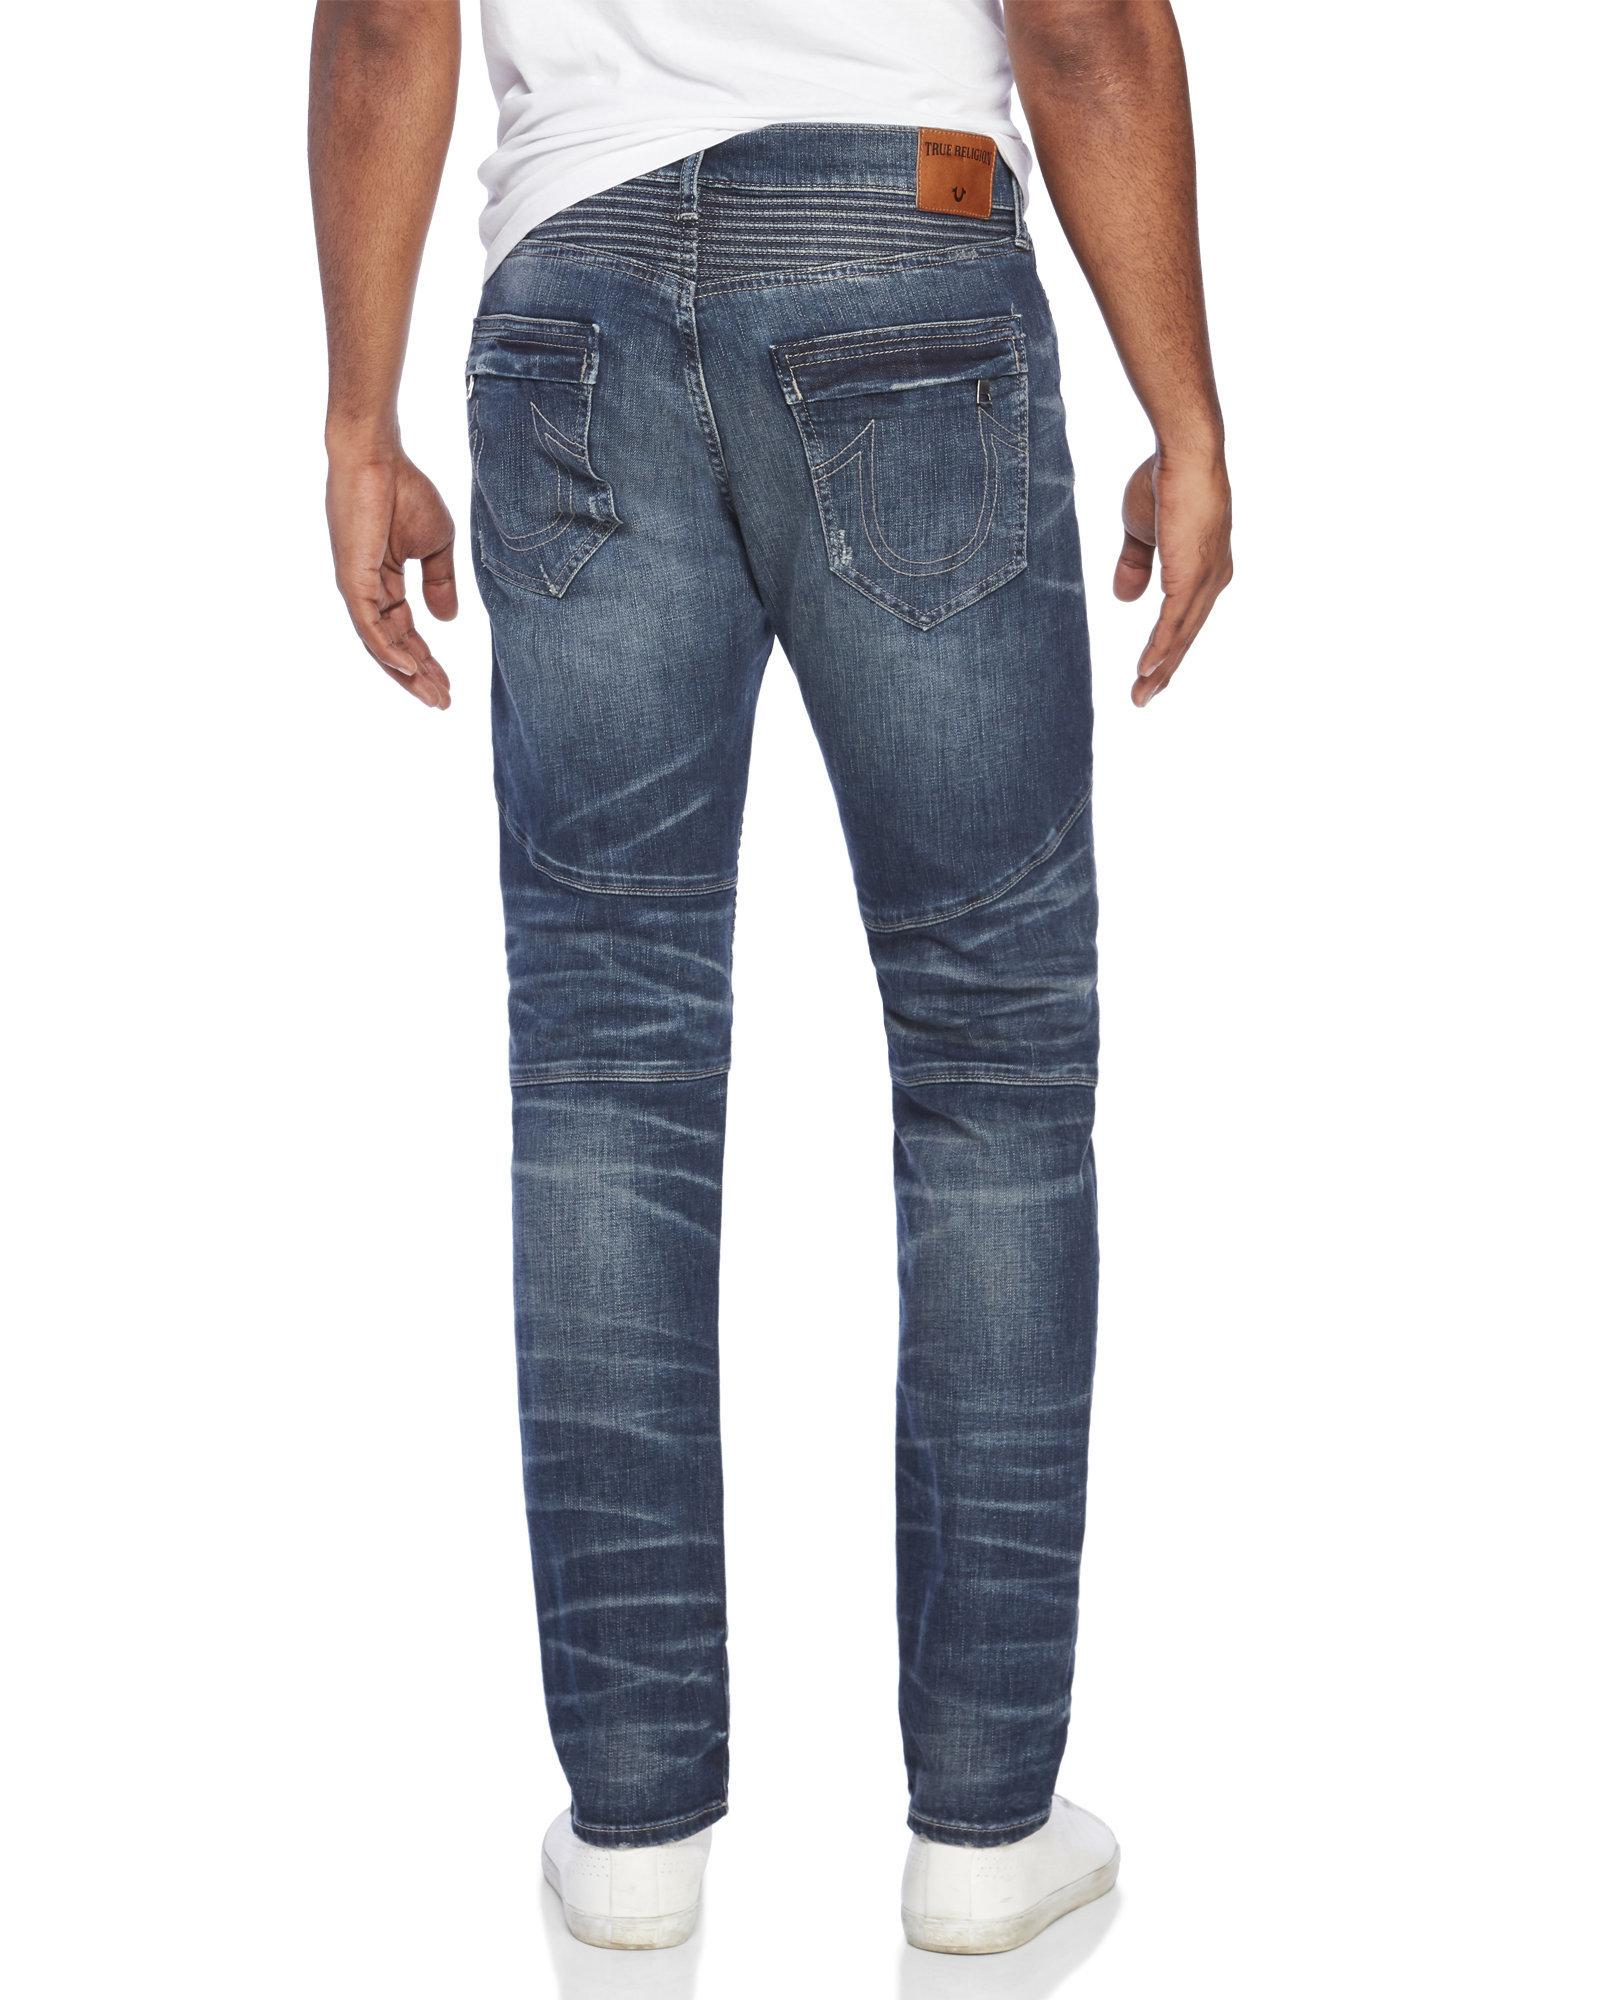 9343eb0b2 True religion Geno Relaxed Slim Fit Moto Jeans in Blue for Men